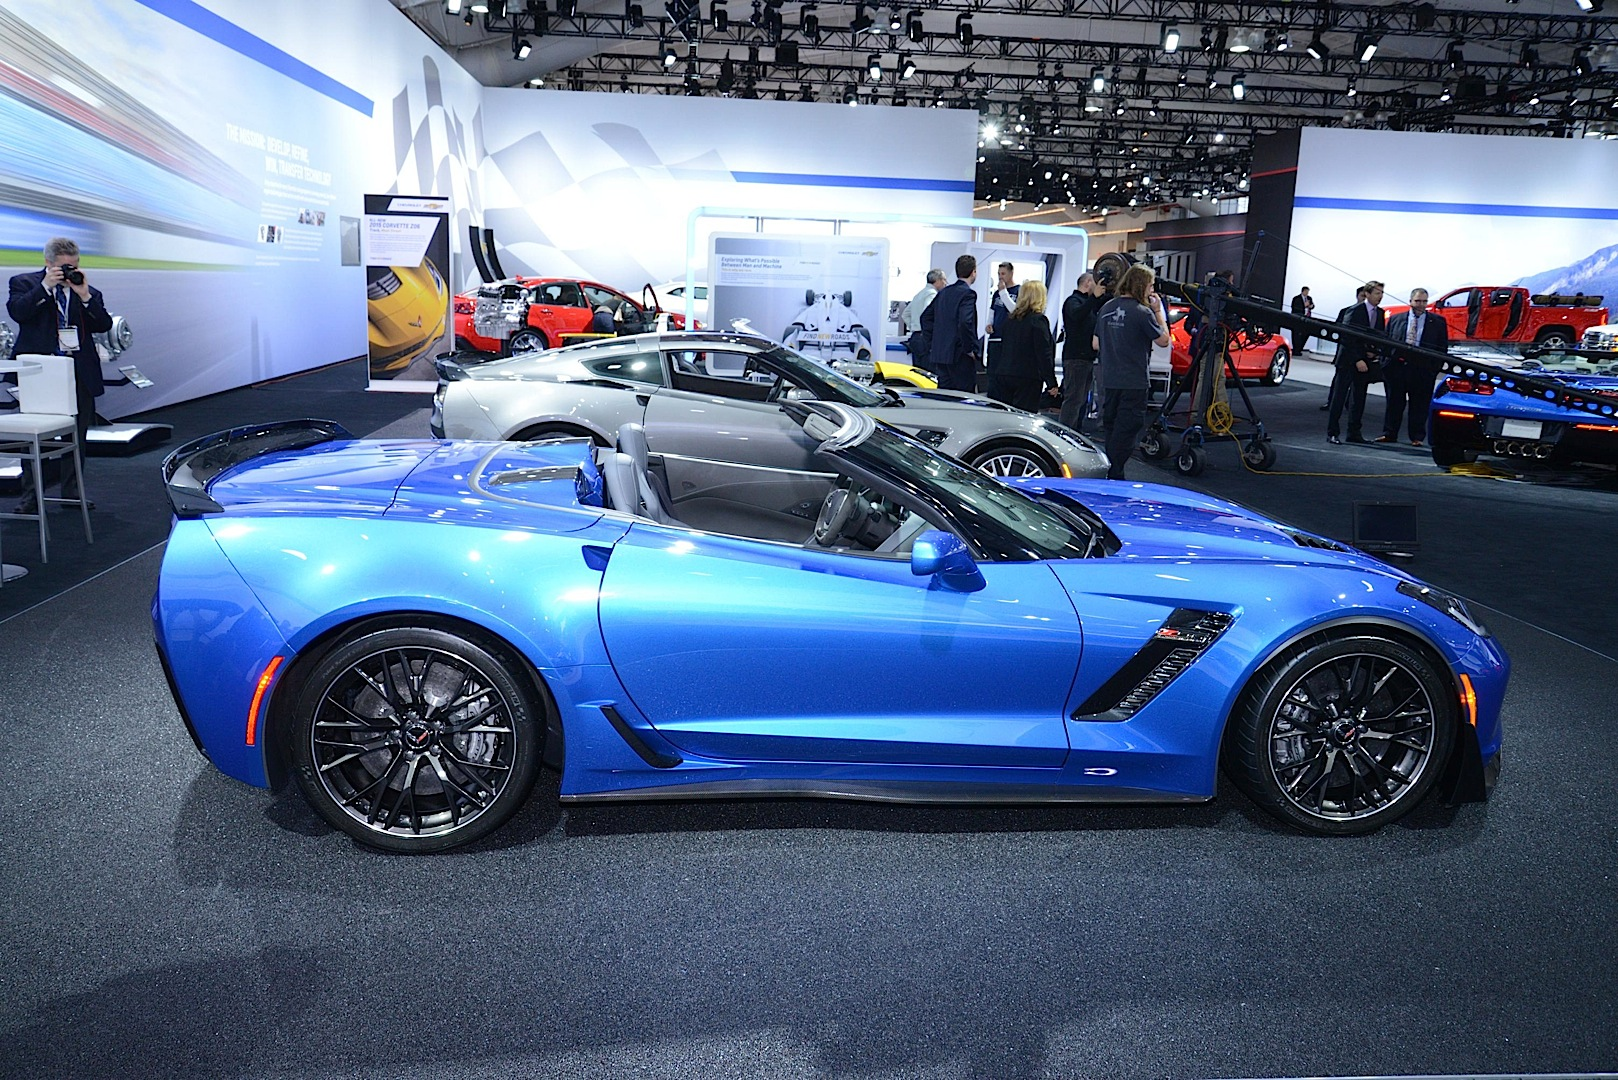 2015 chevrolet corvette z06 goes topless at the new york auto show - 2015 Corvette Stingray Convertible Blue